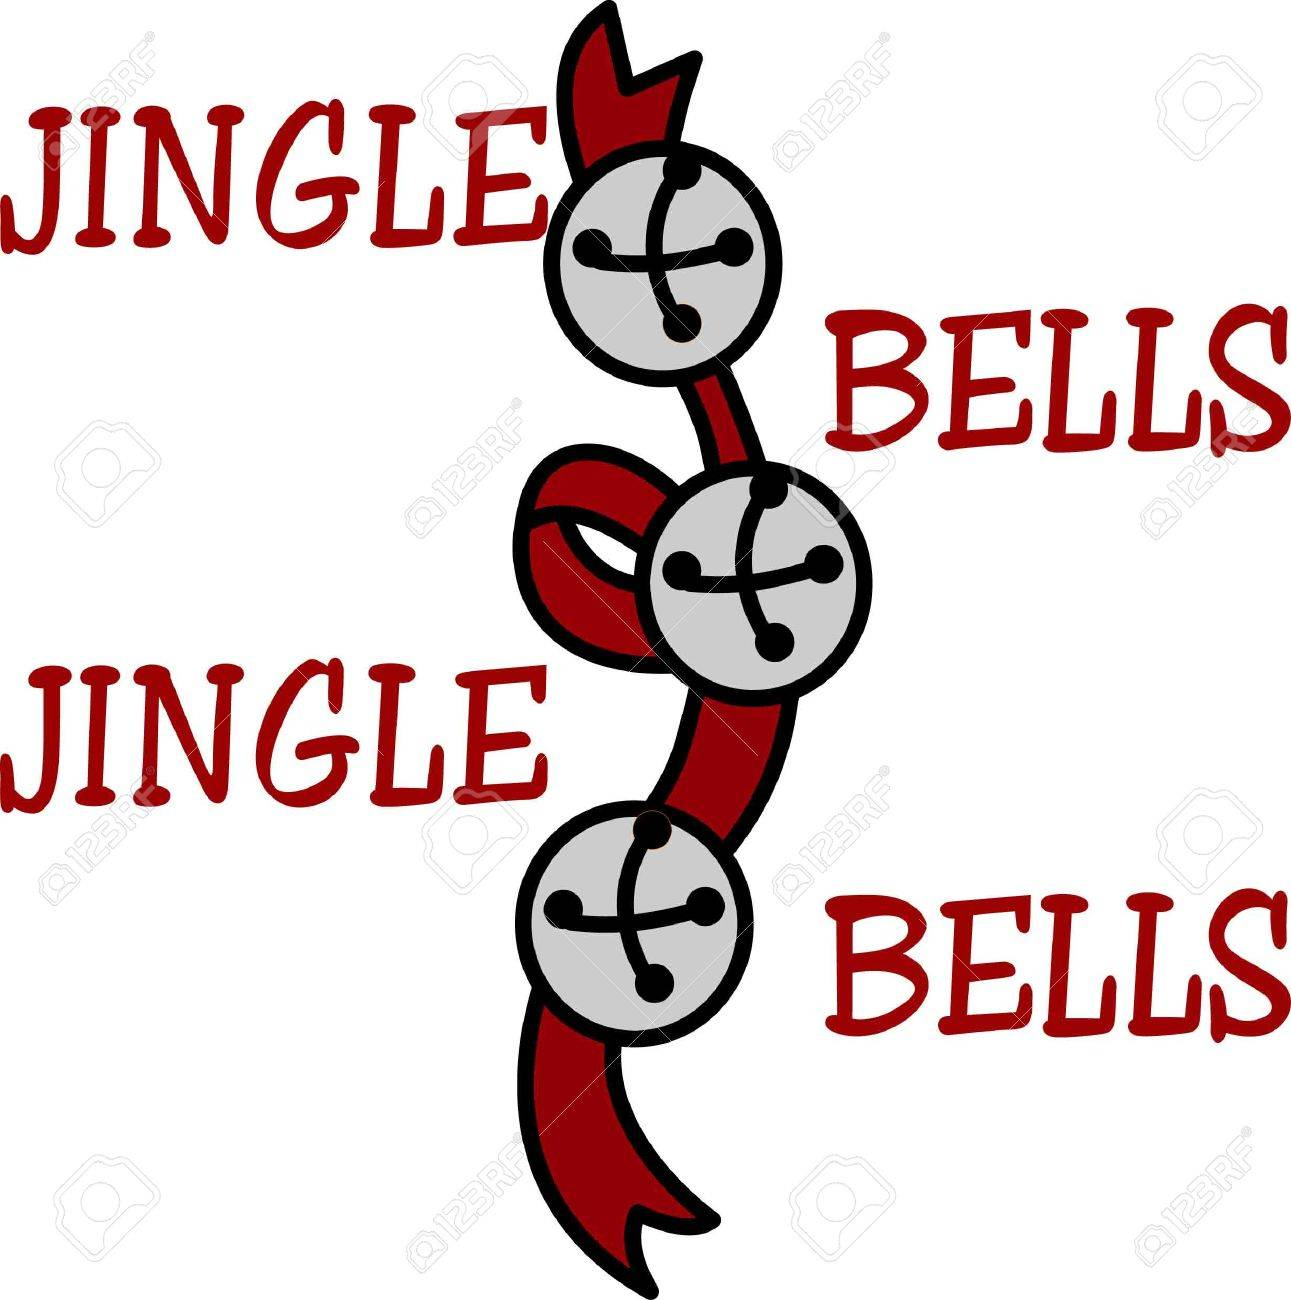 Sleigh bells jingle a cheery holiday sound  This happy holiday